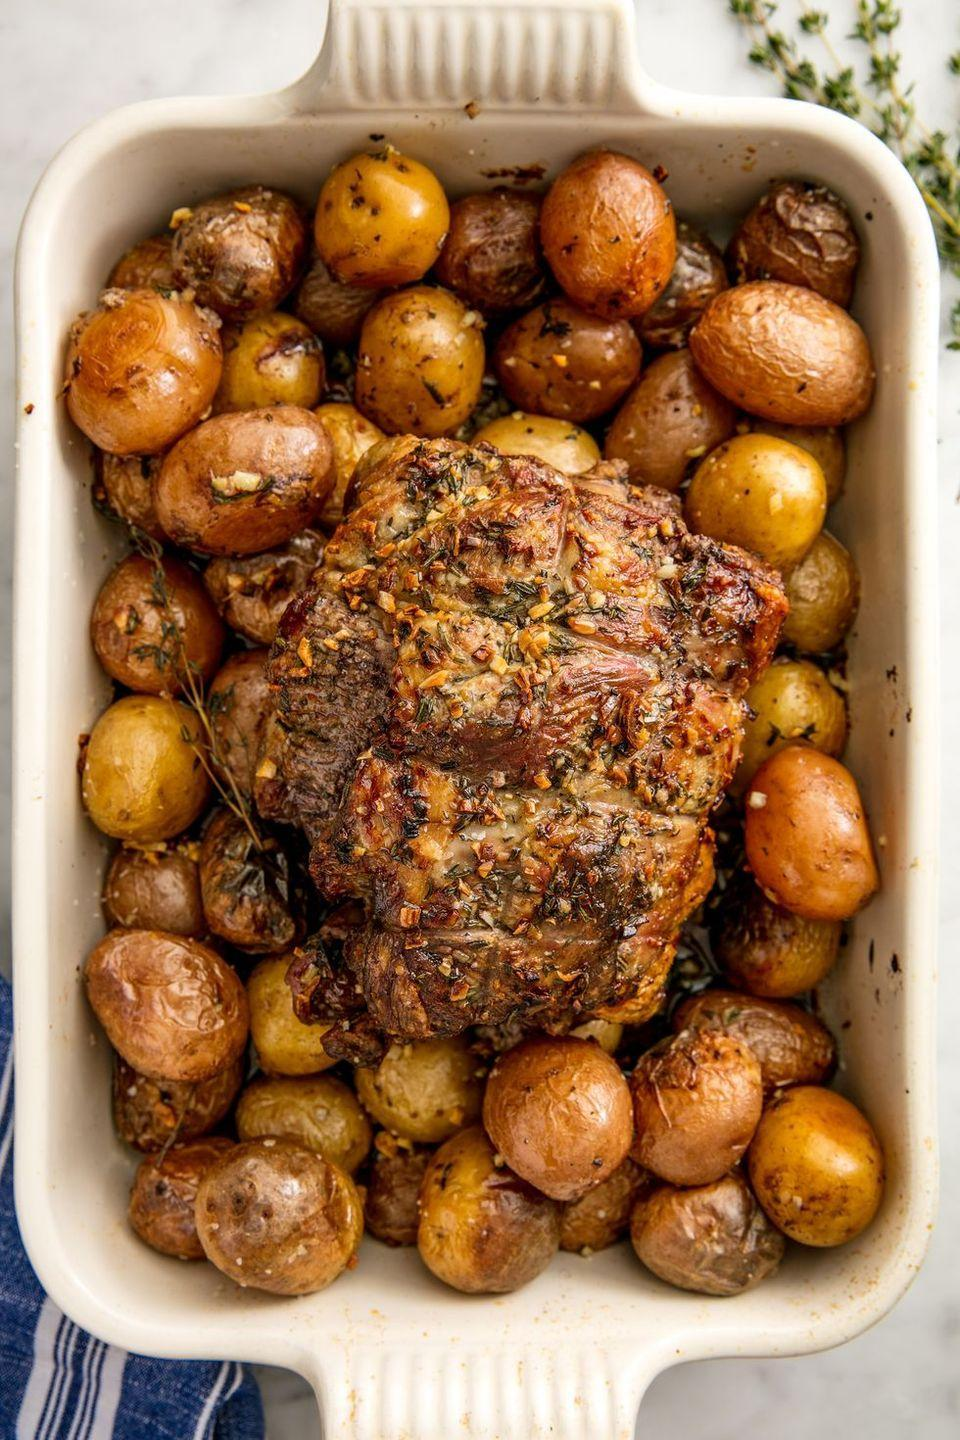 """<p>Hacking your way through roasting a carved protein to serve at the dinner table has never been so easy. This tender cut of lamb is propped up among well-seasoned potatoes that sizzle in the natural juices of the lamb, allowing it to be evenly roasted. </p><p><em><a href=""""https://www.delish.com/cooking/recipe-ideas/recipes/a56354/best-roast-lamb-recipe/"""" rel=""""nofollow noopener"""" target=""""_blank"""" data-ylk=""""slk:Get the recipe from Delish »"""" class=""""link rapid-noclick-resp"""">Get the recipe from Delish »</a></em></p>"""